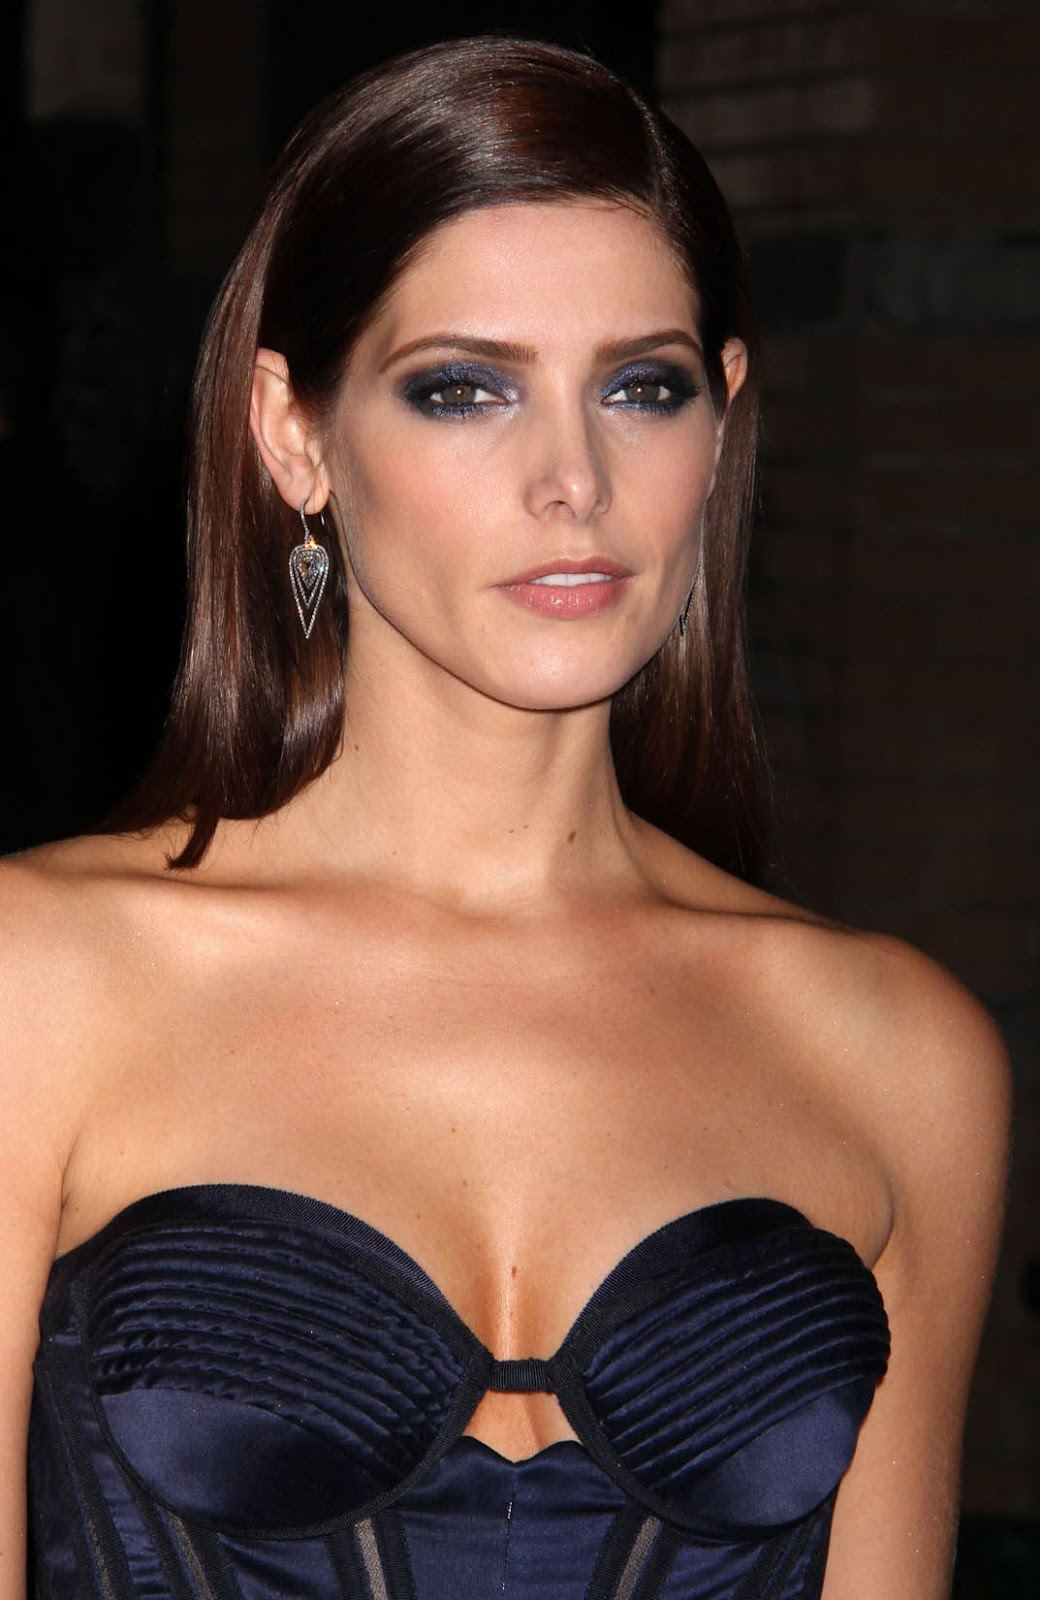 http://2.bp.blogspot.com/-_yp_nDq6ZBs/UKeJxJXsCAI/AAAAAAAAOWQ/BKQxnX-quuU/s1600/ashley_greene_blue_screening_2.jpg